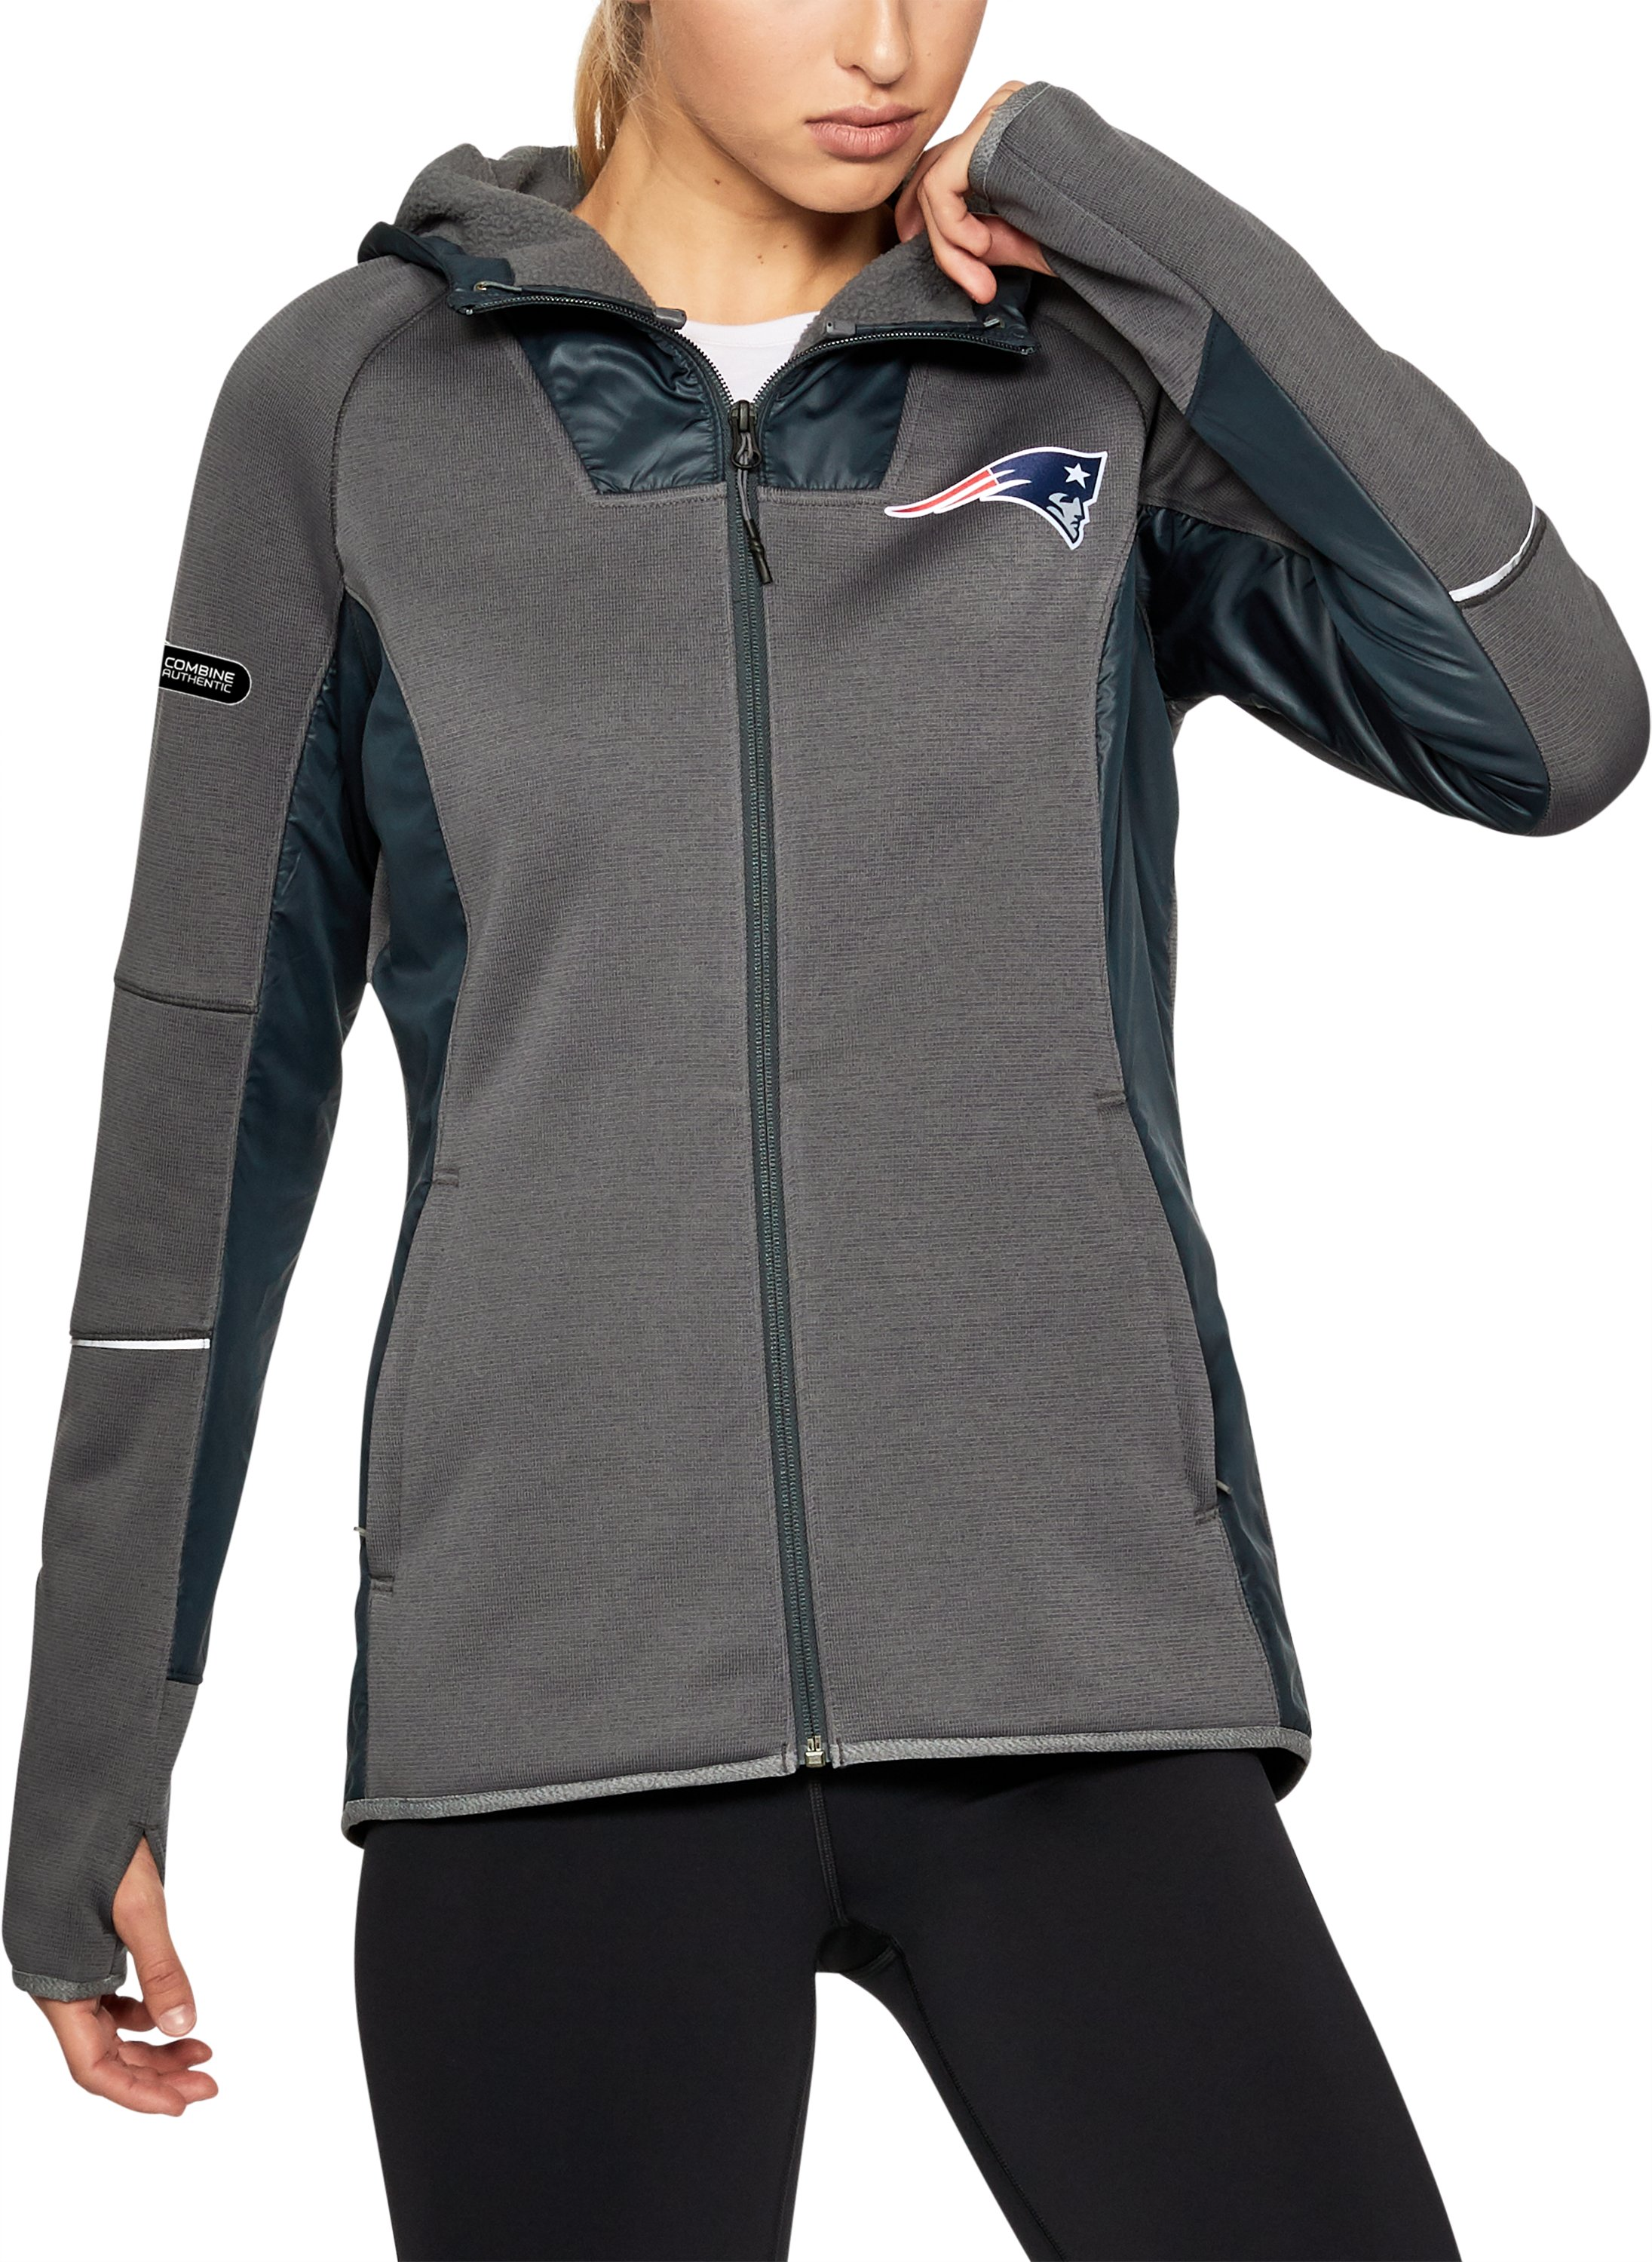 Women's NFL Combine Authentic Swacket, NFL_NEW ENGLAND PATRIOTS_STEALTH GRAY, zoomed